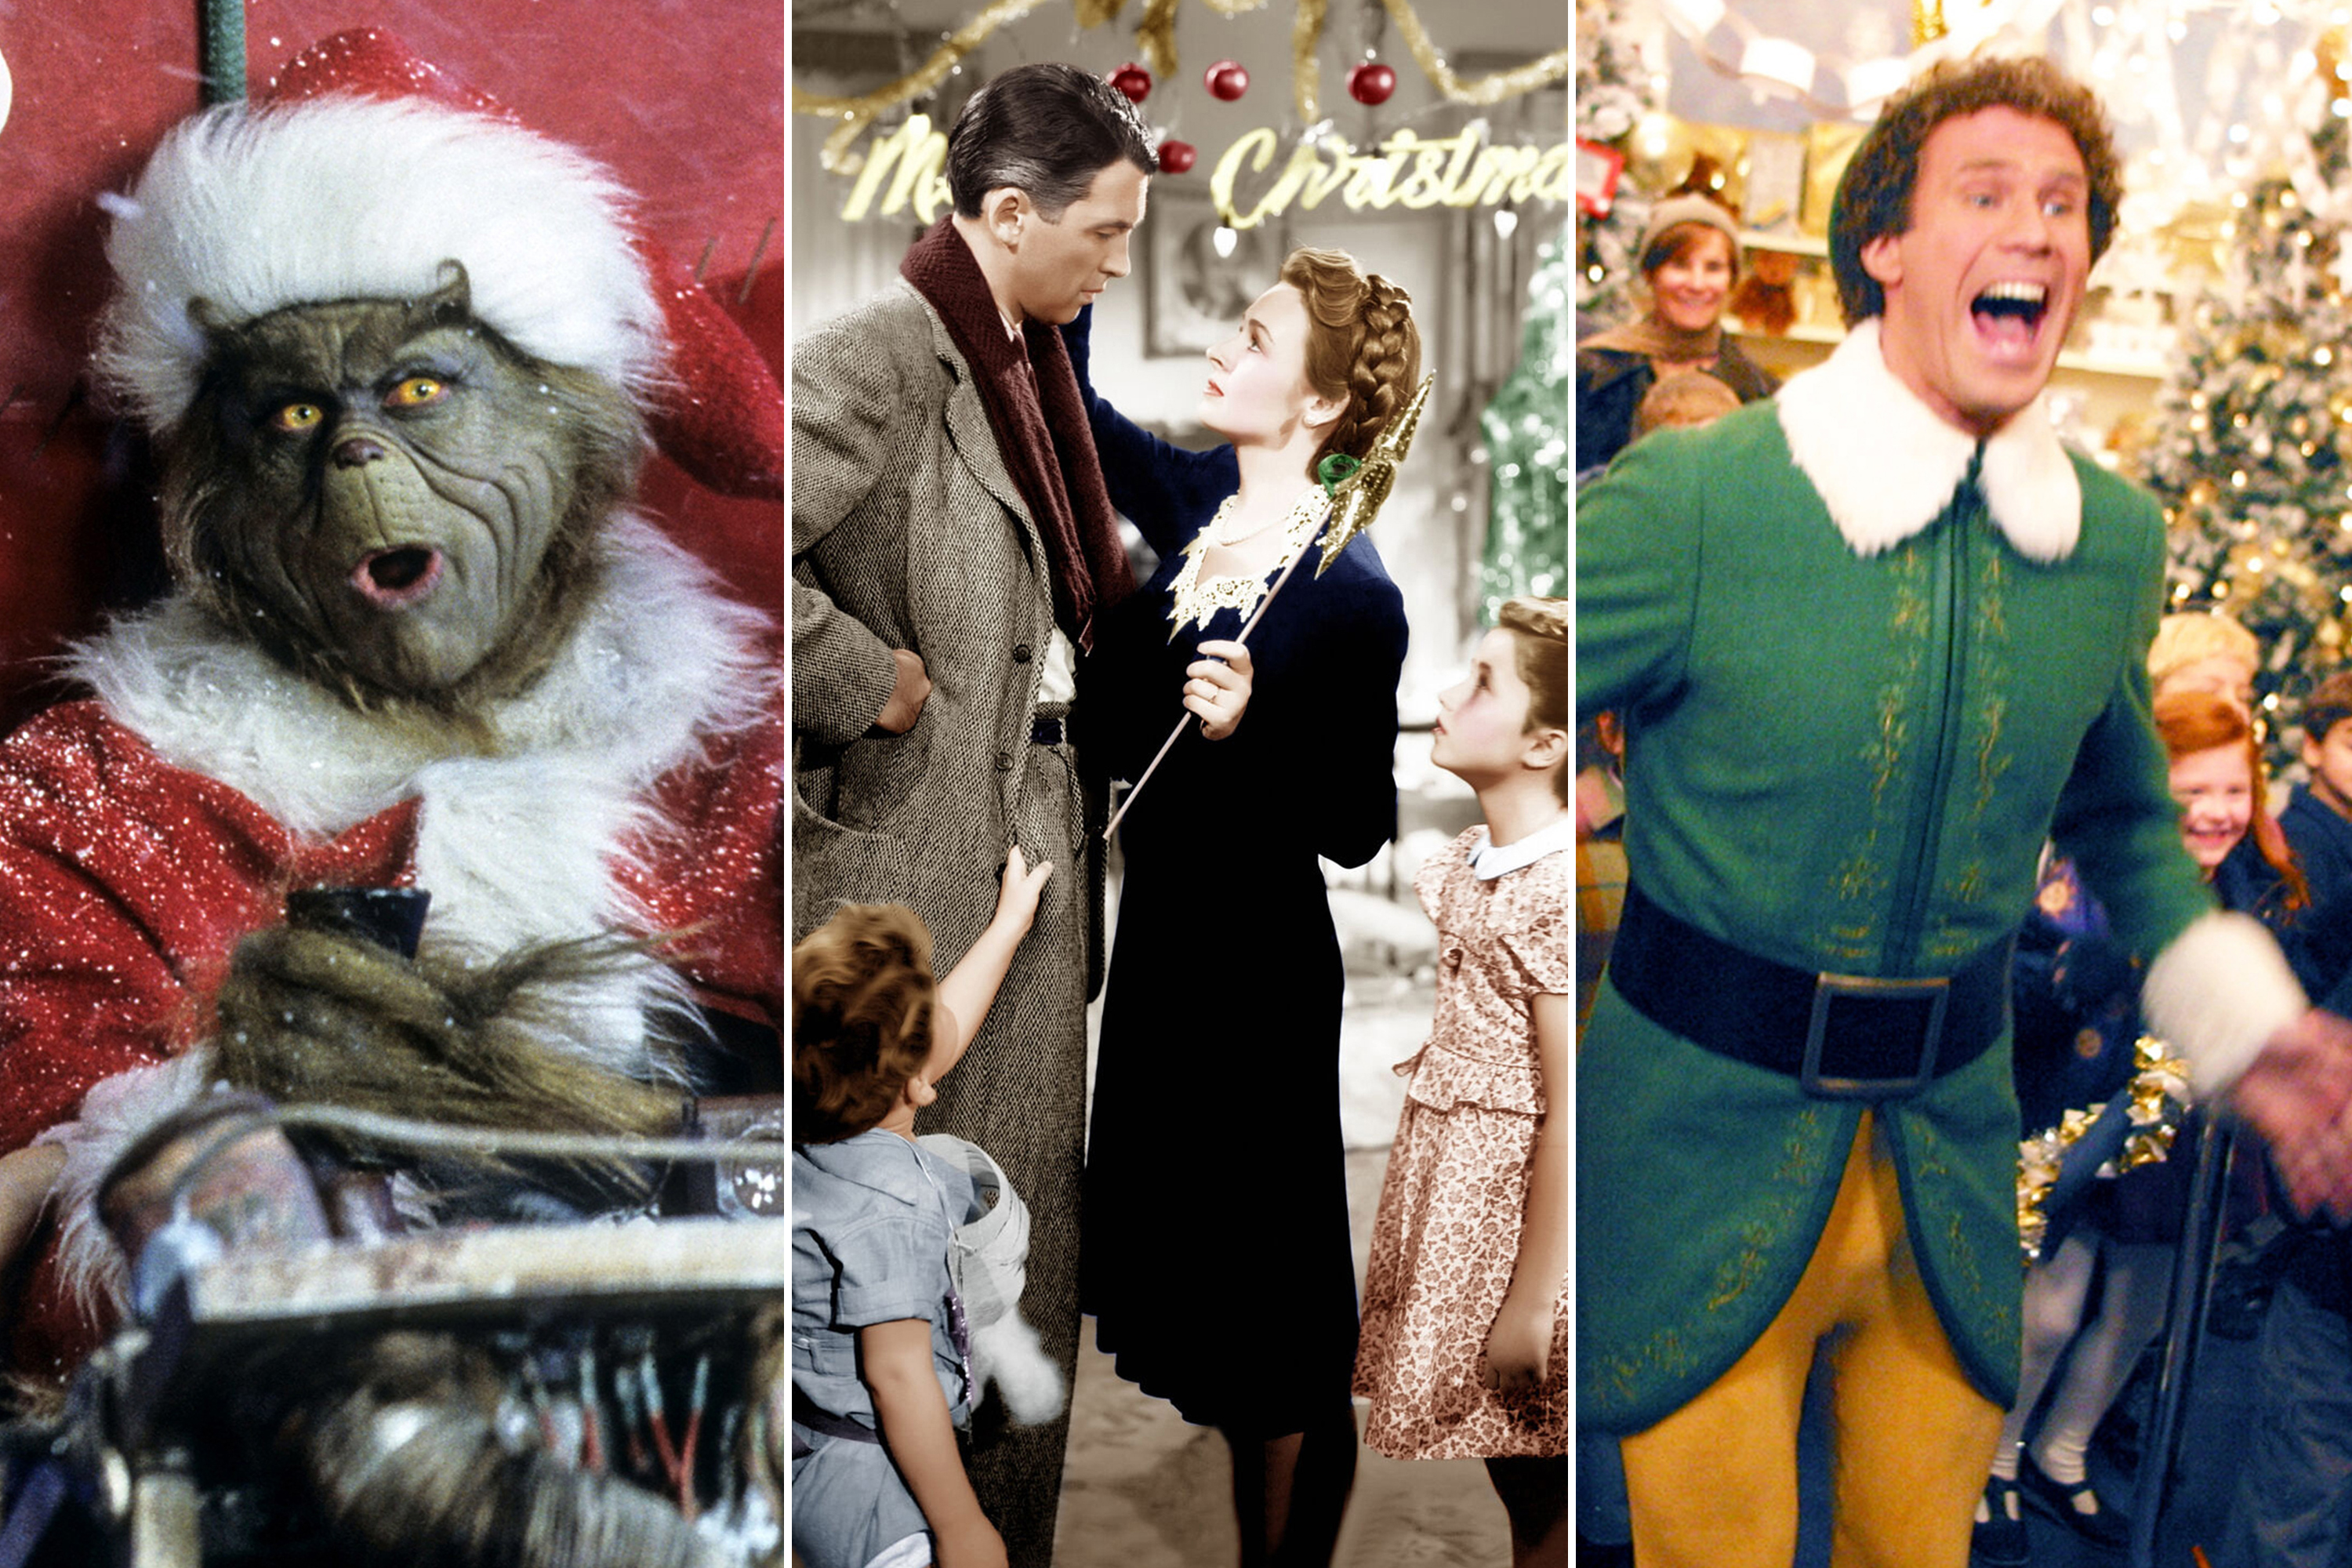 Where to watch all the best Christmas movies in 2020